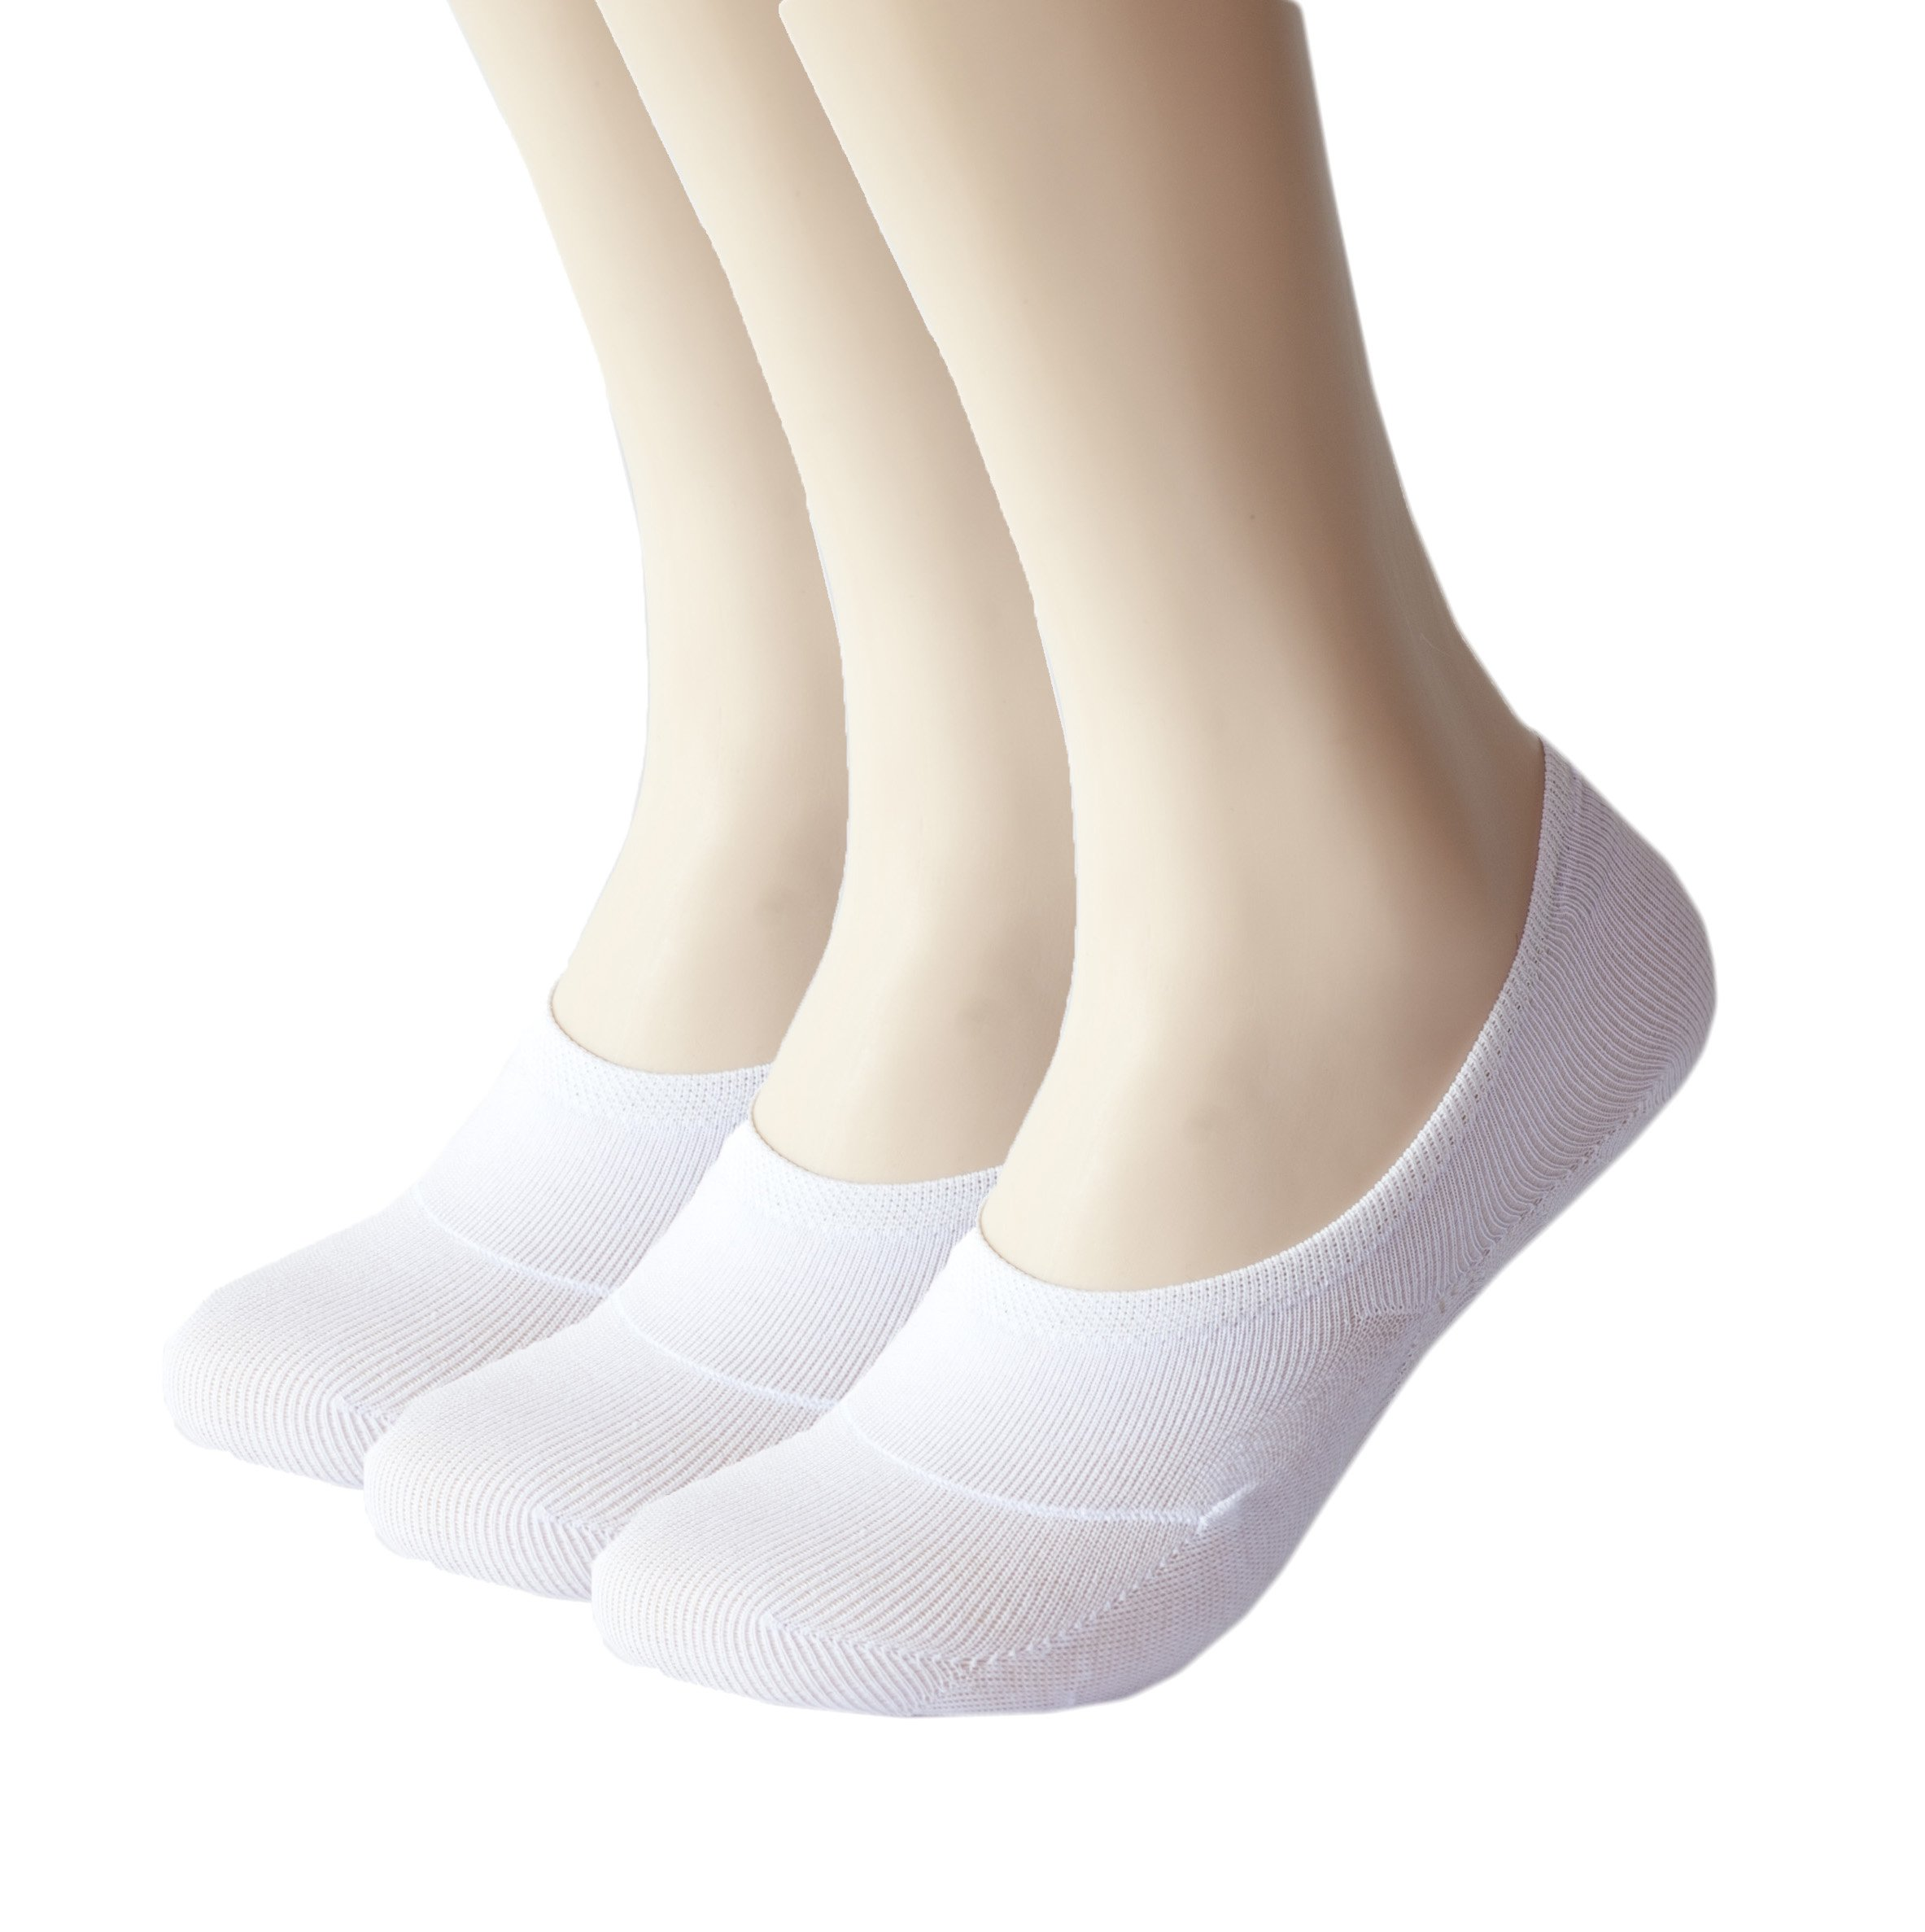 Women No Show Socks 3 to 8 Pairs Thin Non Slip Flat Boat Line Low Cut Socks Women